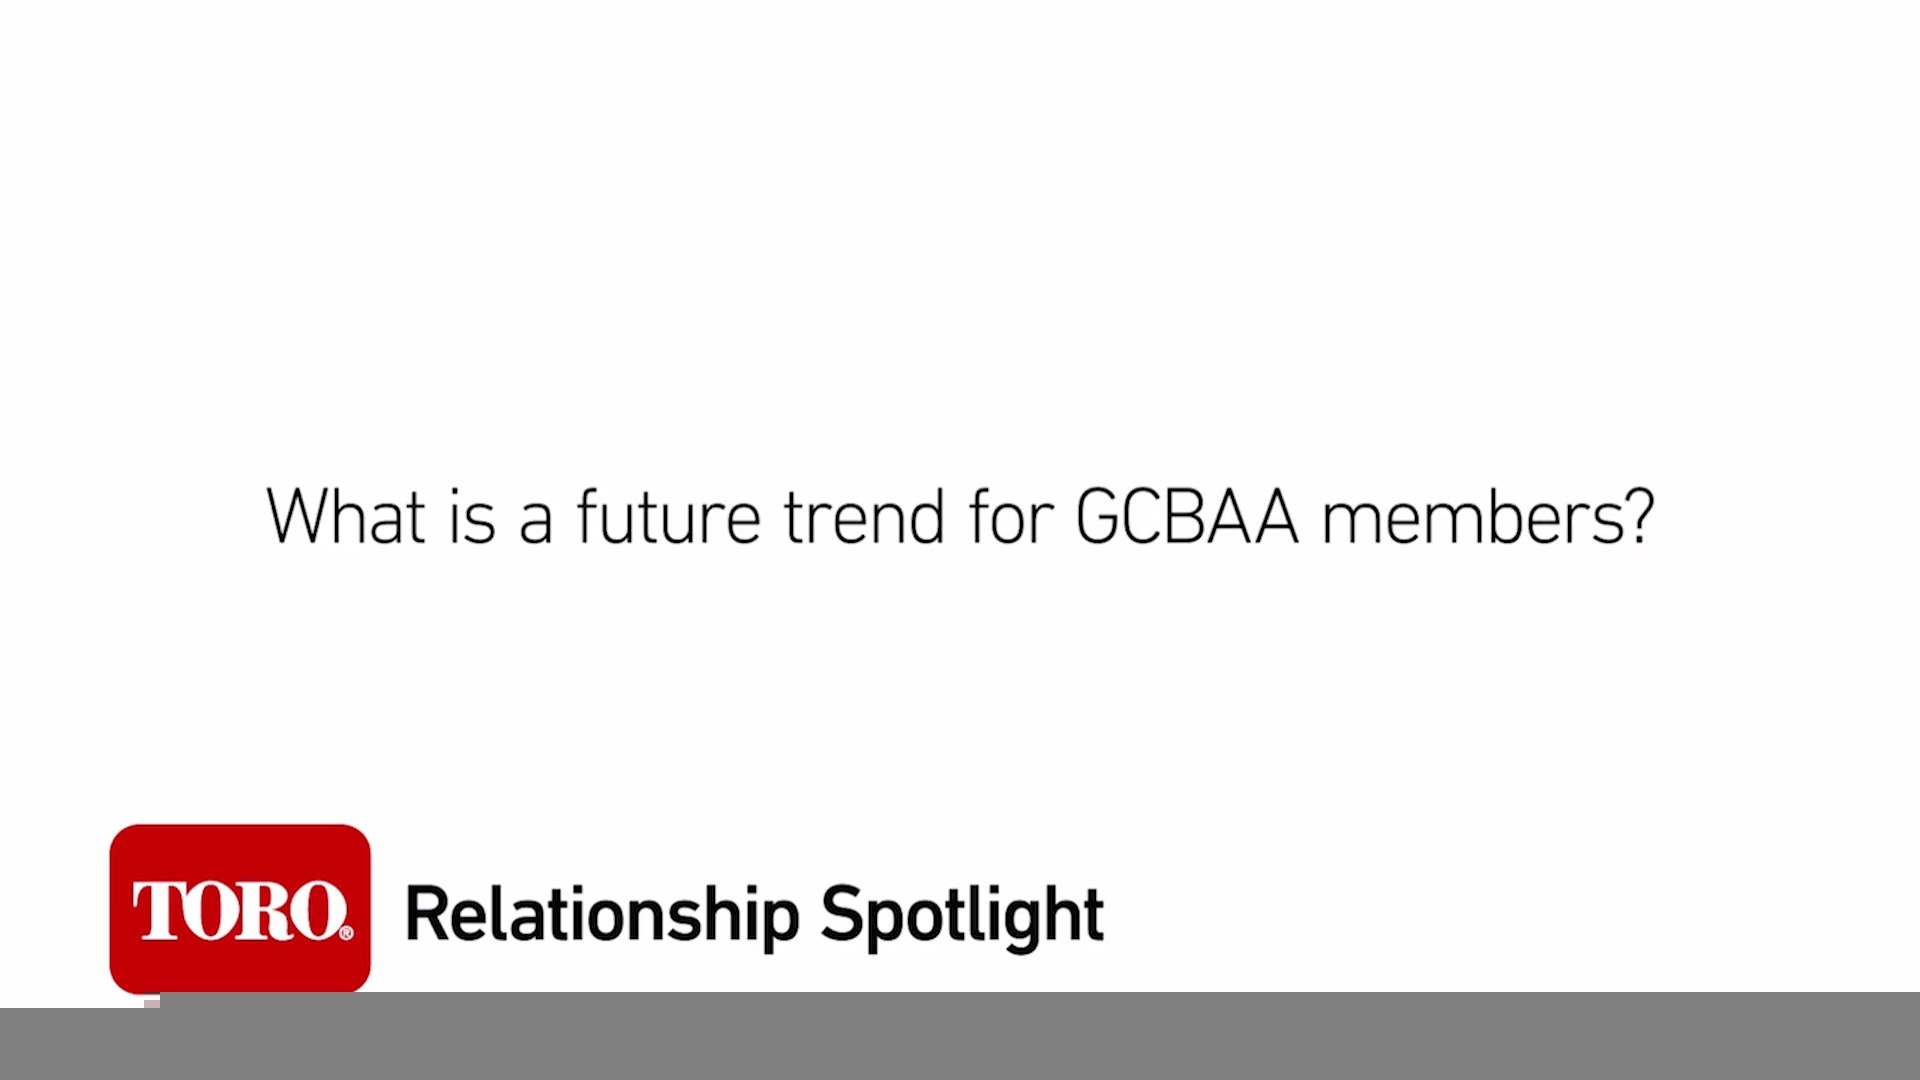 Relationship Spotlight: Future Trends